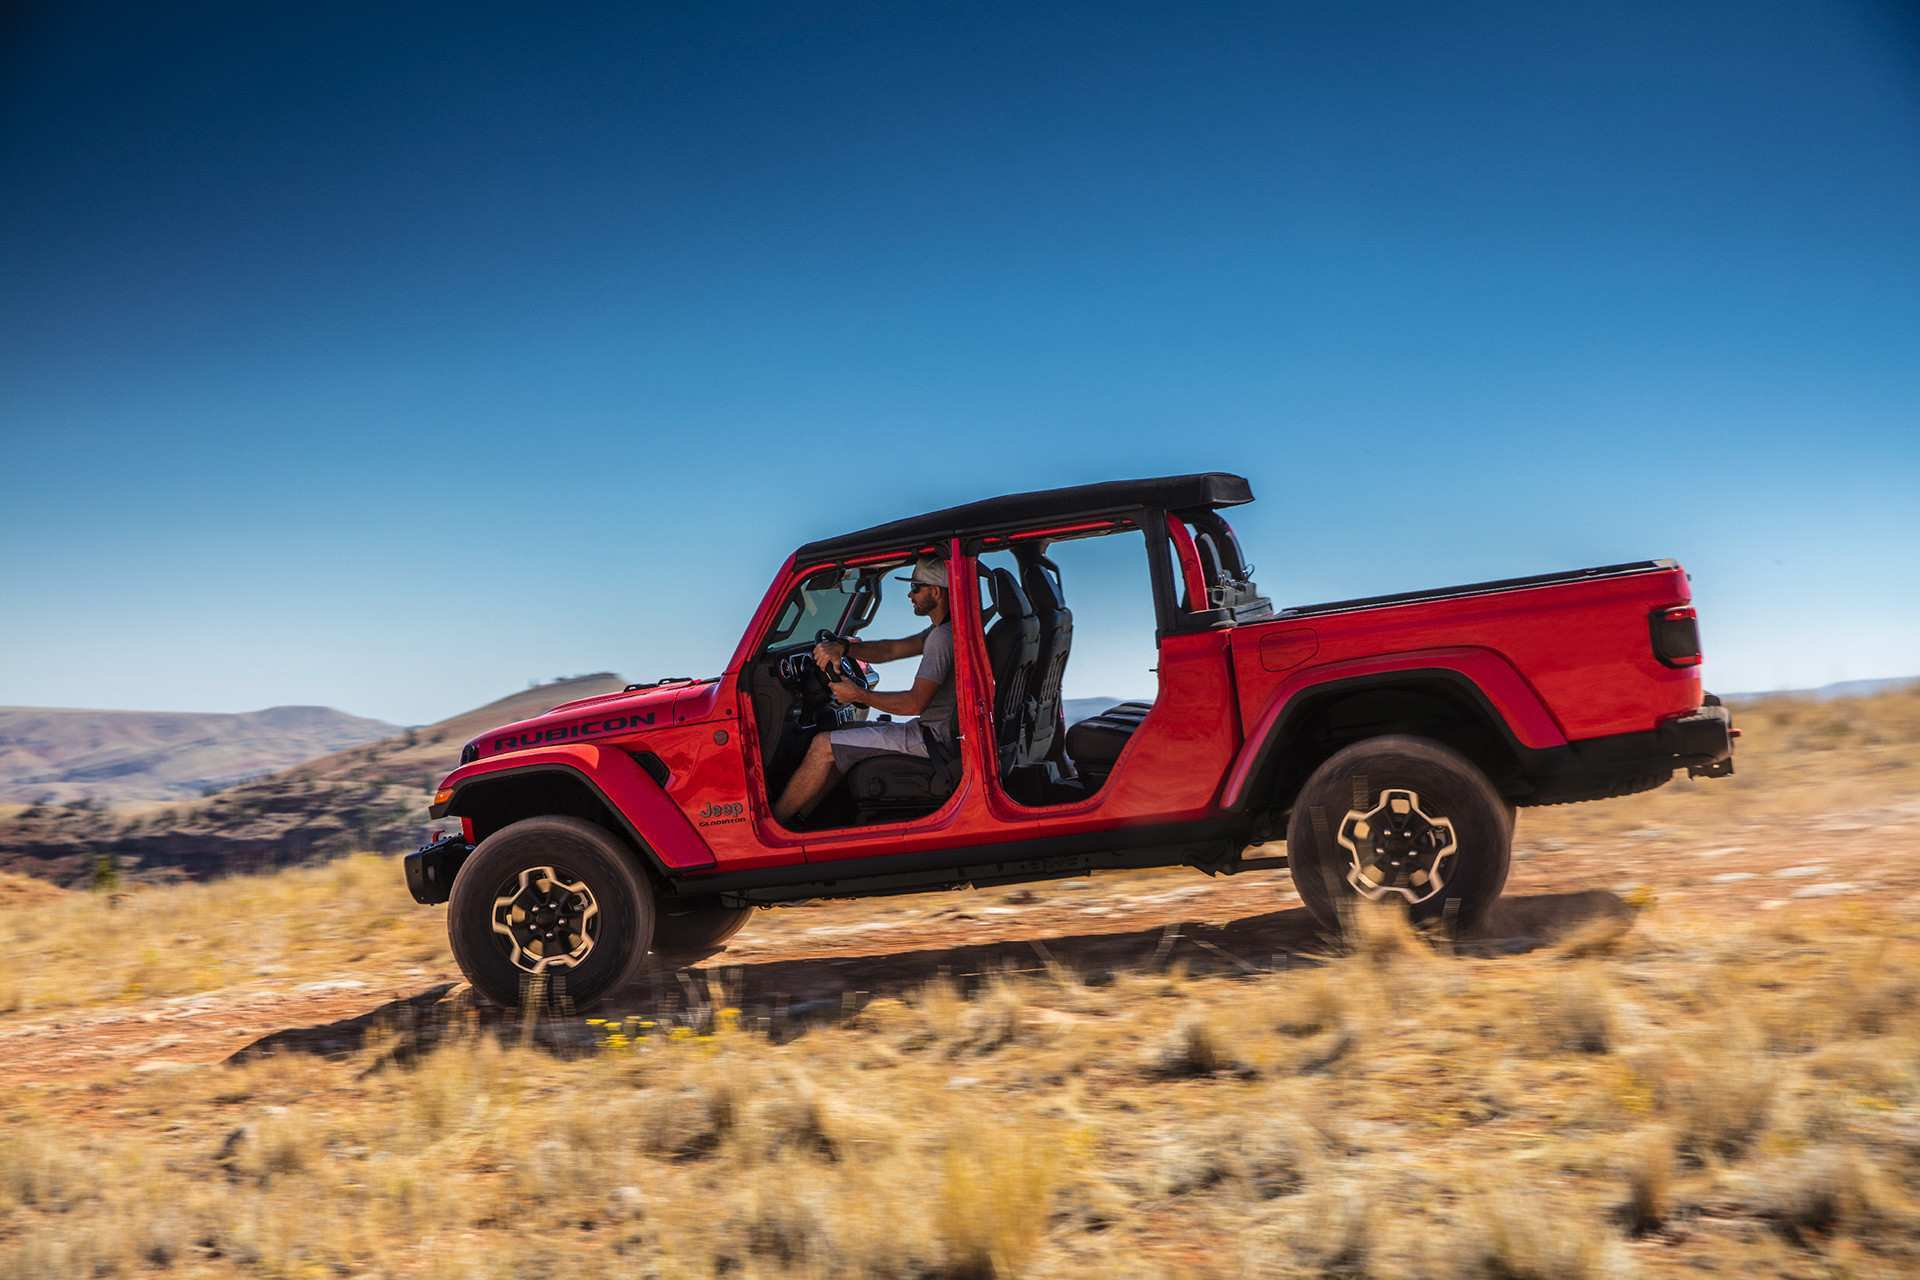 76 New 2019 Jeep Gladiator Wallpaper